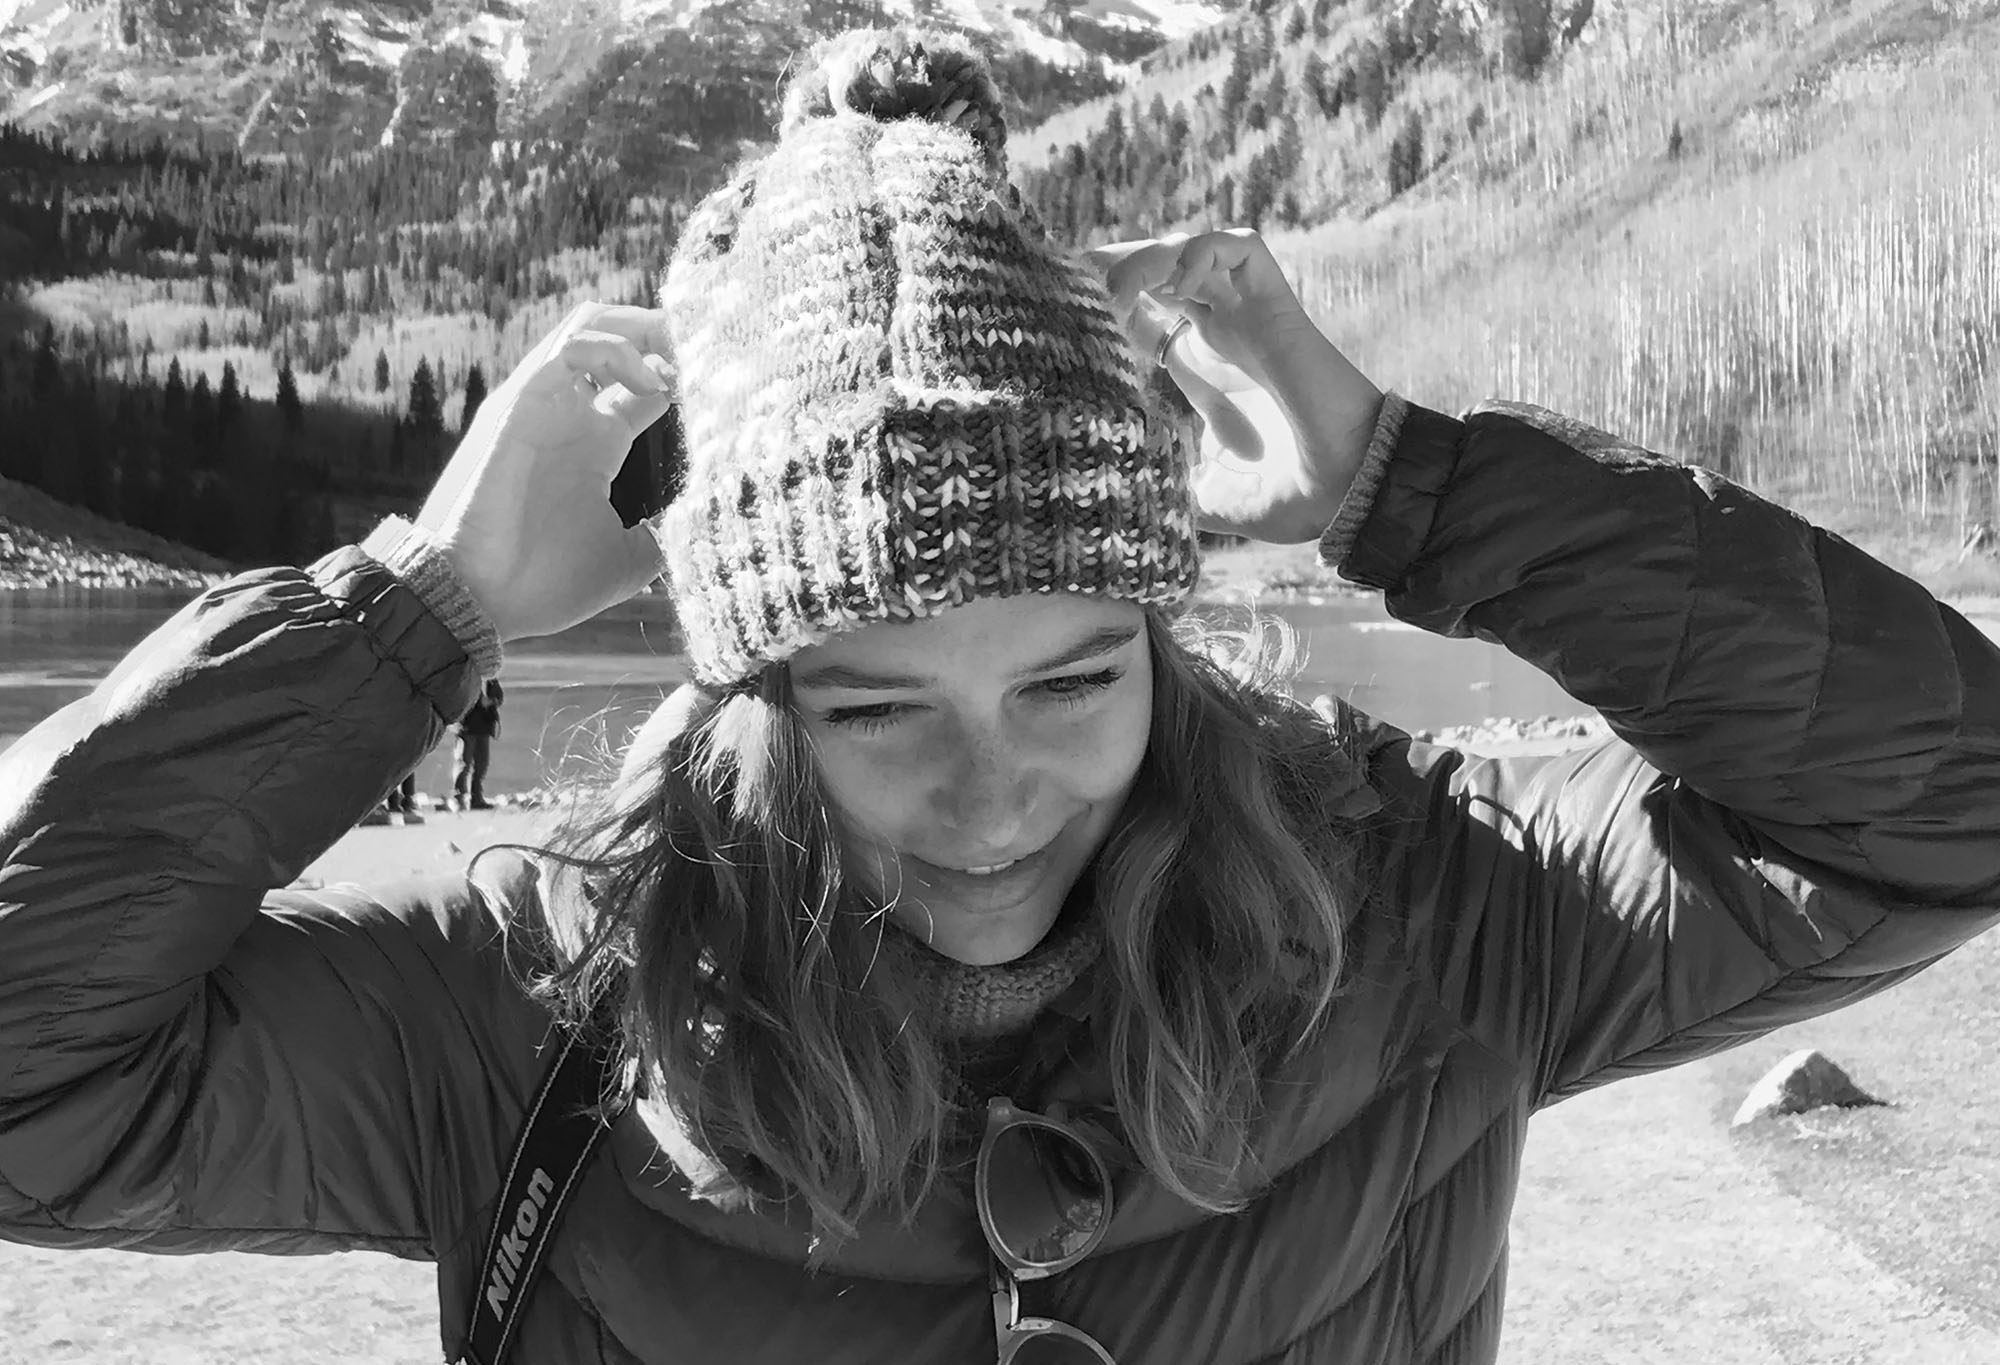 www.boulderingonline.pl Rock climbing and bouldering pictures and news sonya pevzner wearing beanie near mountains